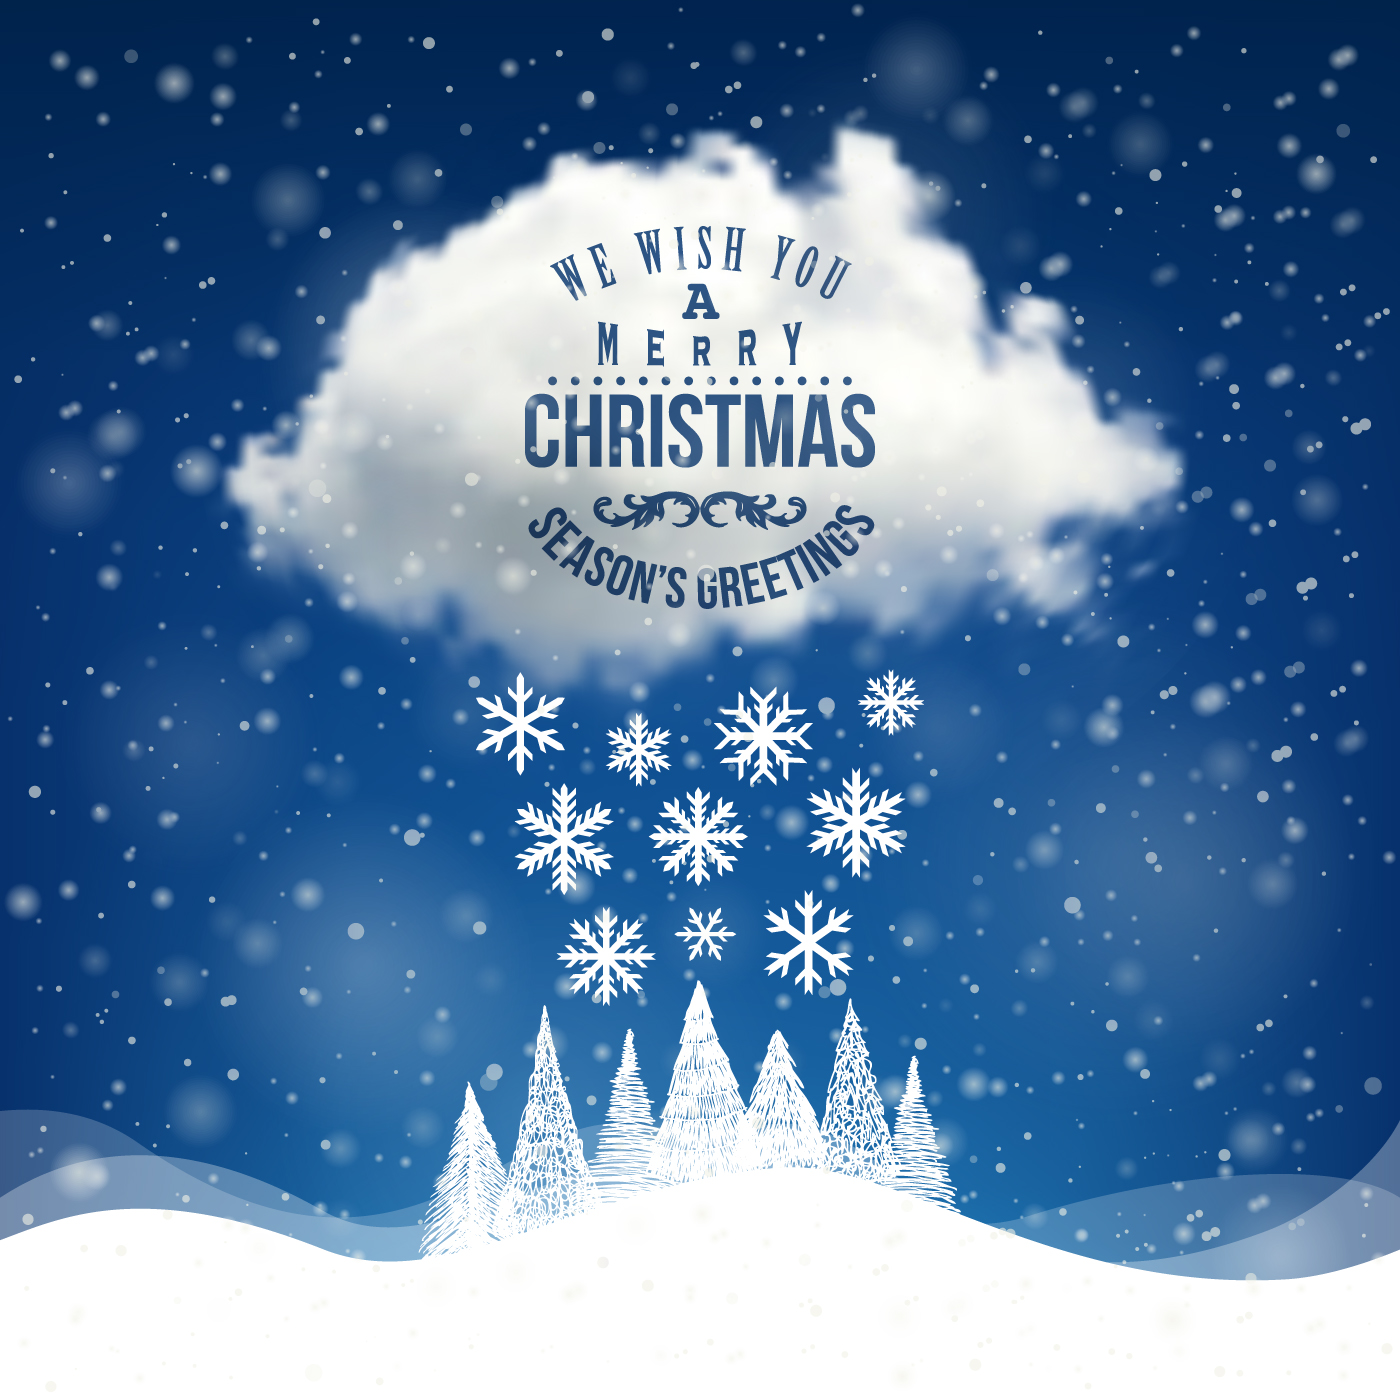 Winter holiday cards vector set 03 free download winter holiday cards vector set 03 m4hsunfo